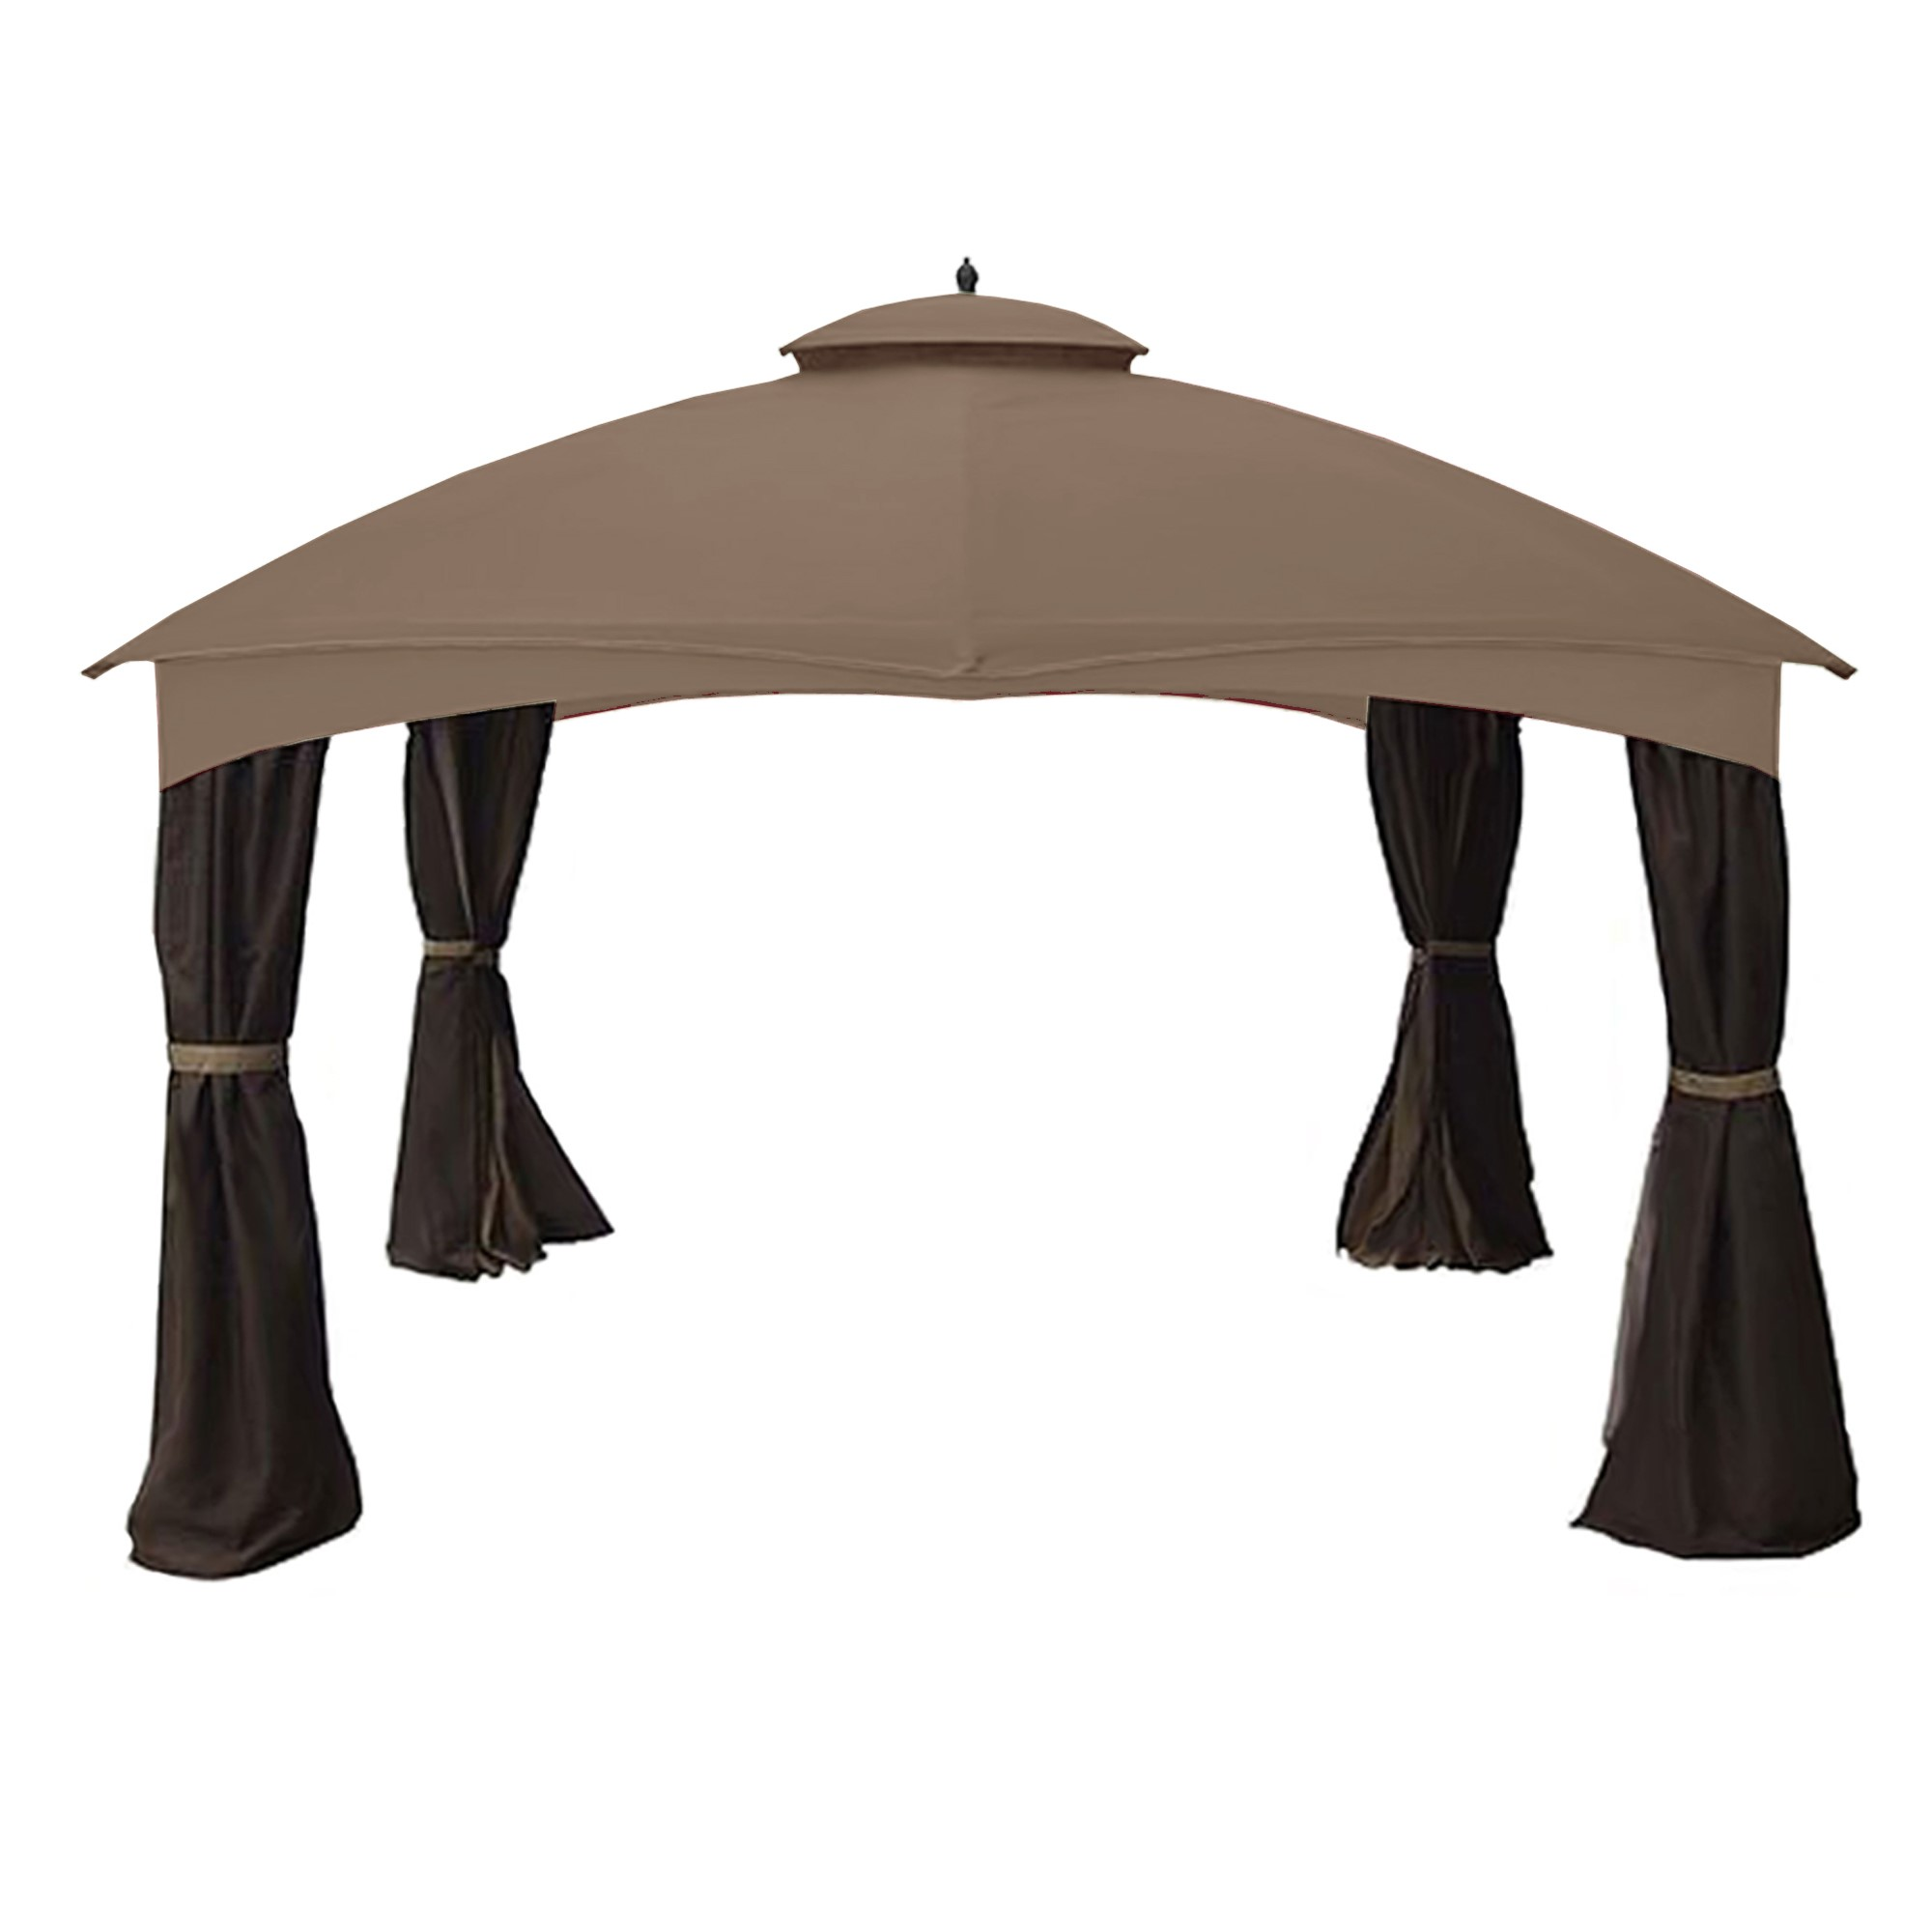 Garden Winds Replacement Canopy Top Cover for the Allen Roth 10 x 12 Gazebo - Nutmeg